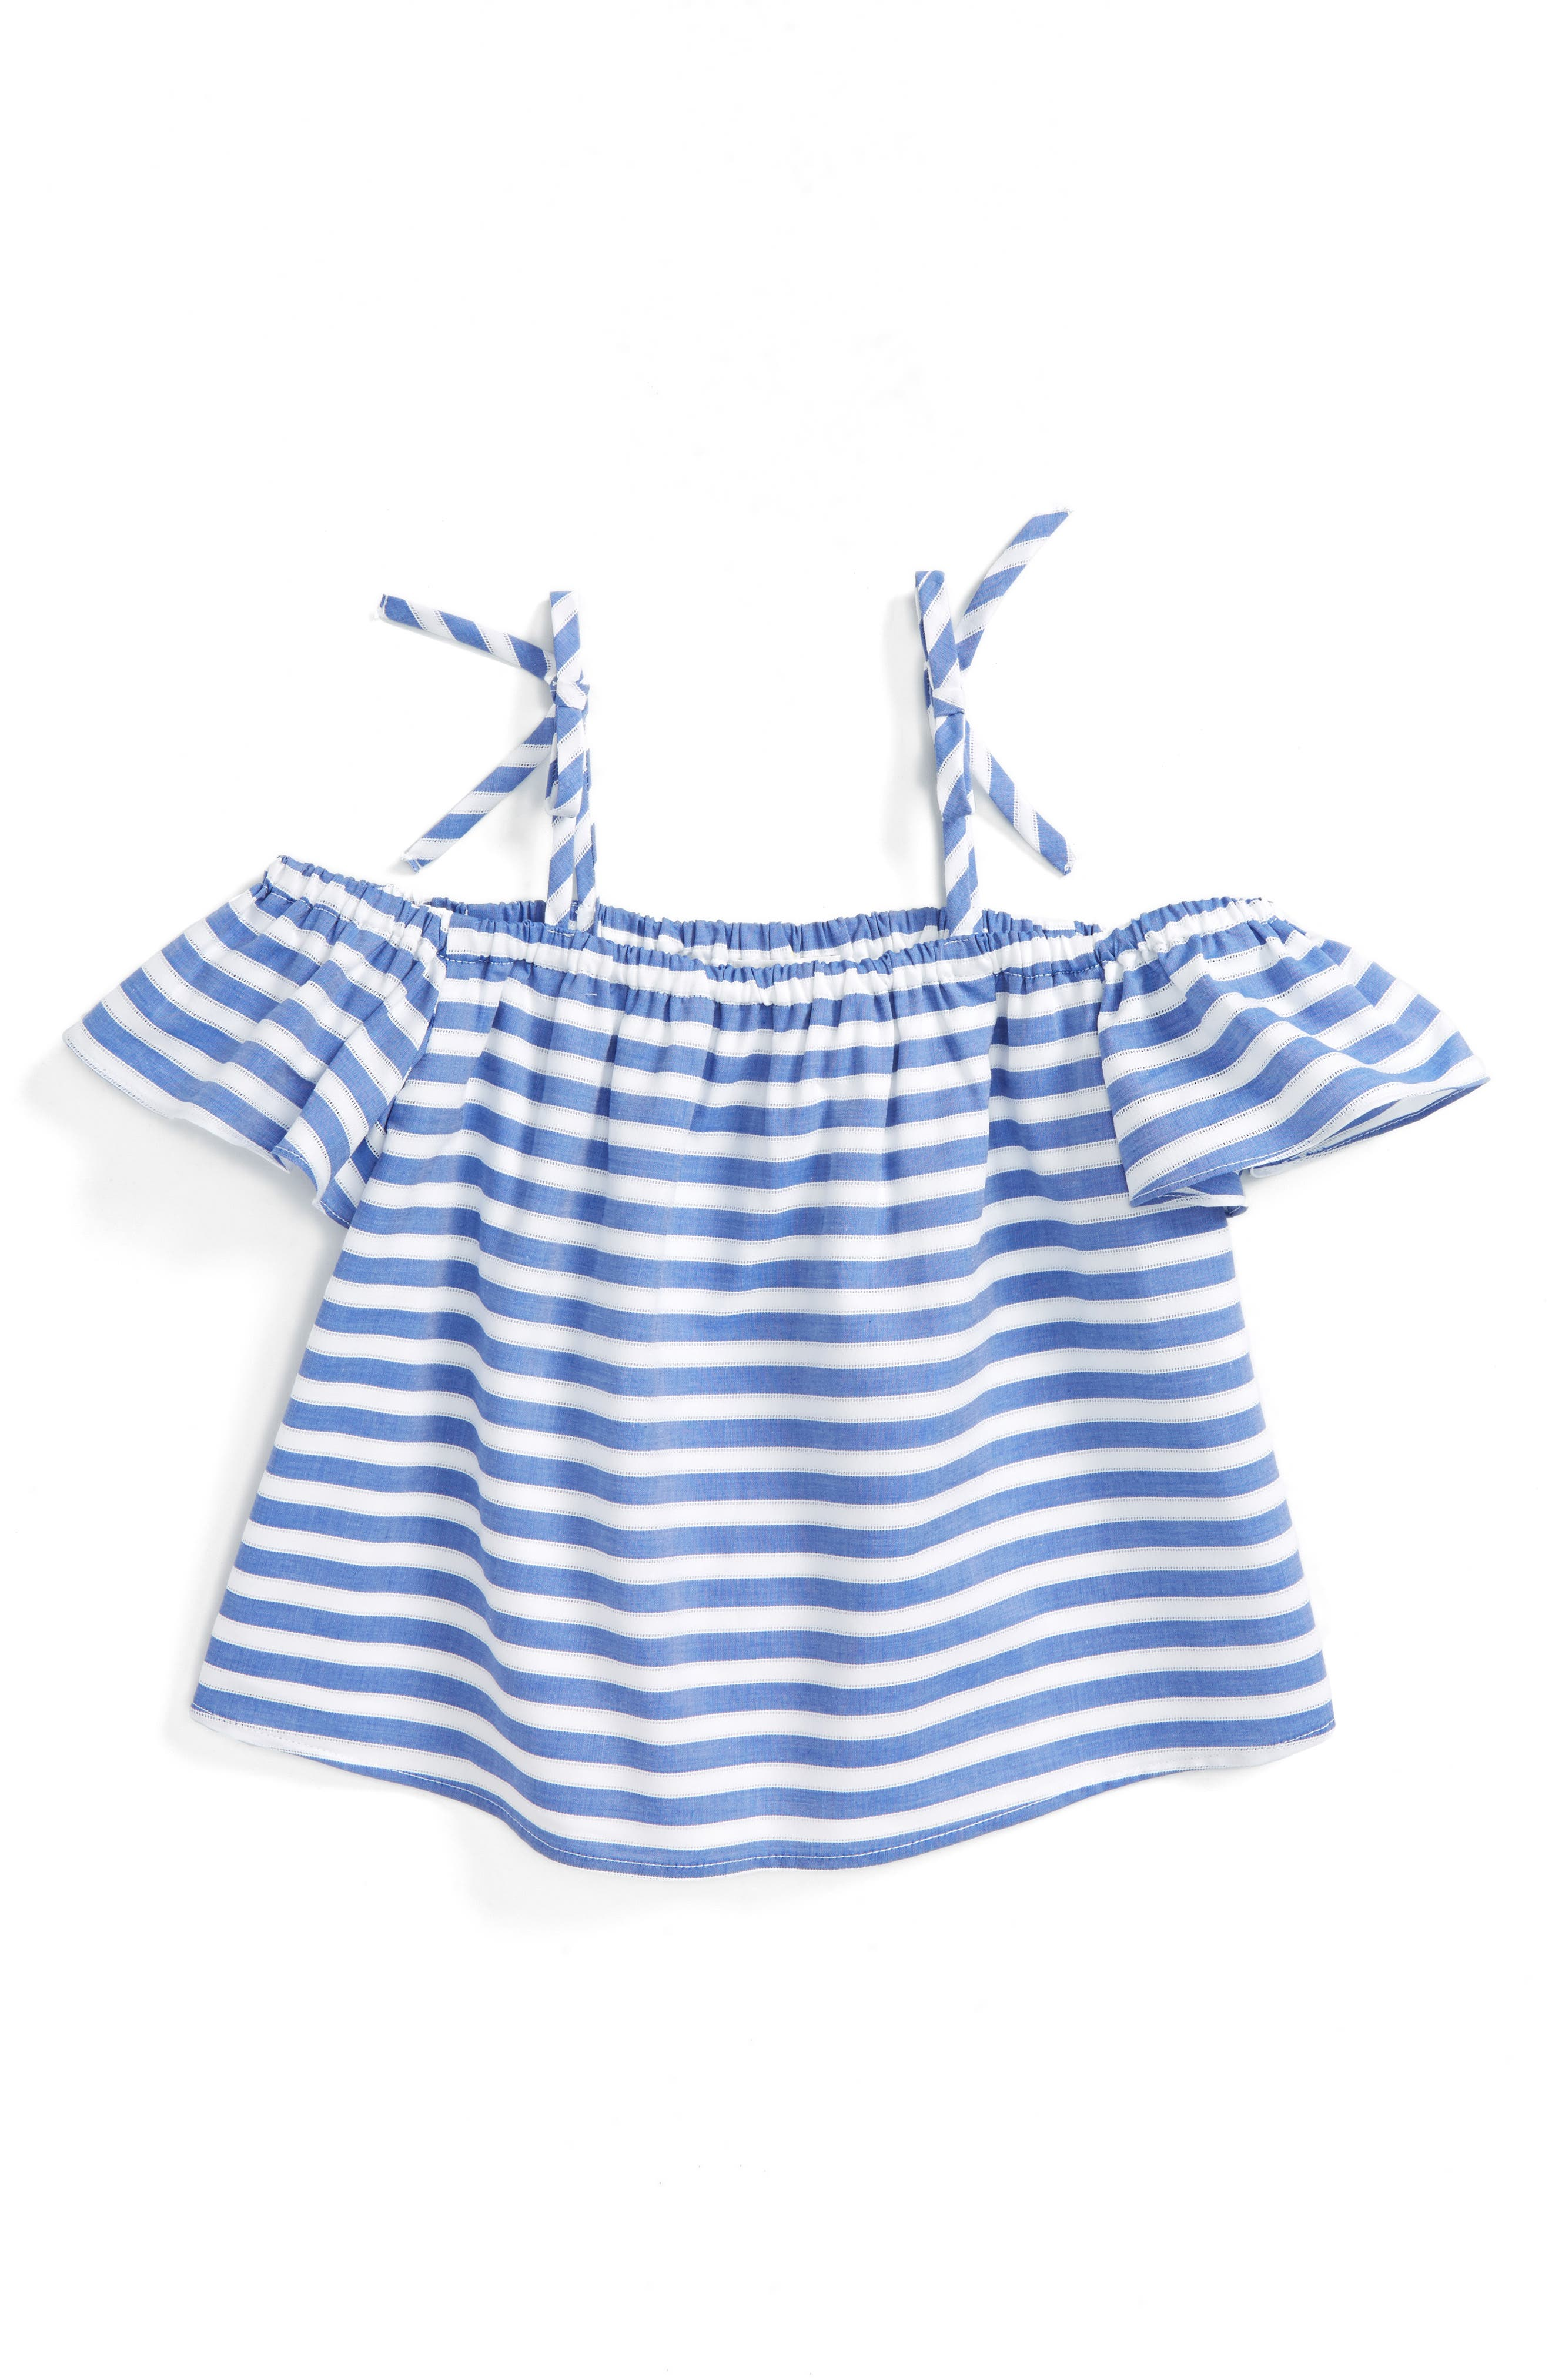 Alternate Image 1 Selected - Milly Minis Chambray Off the Shoulder Top (Toddler Girls, Little Girls & Big Girls)